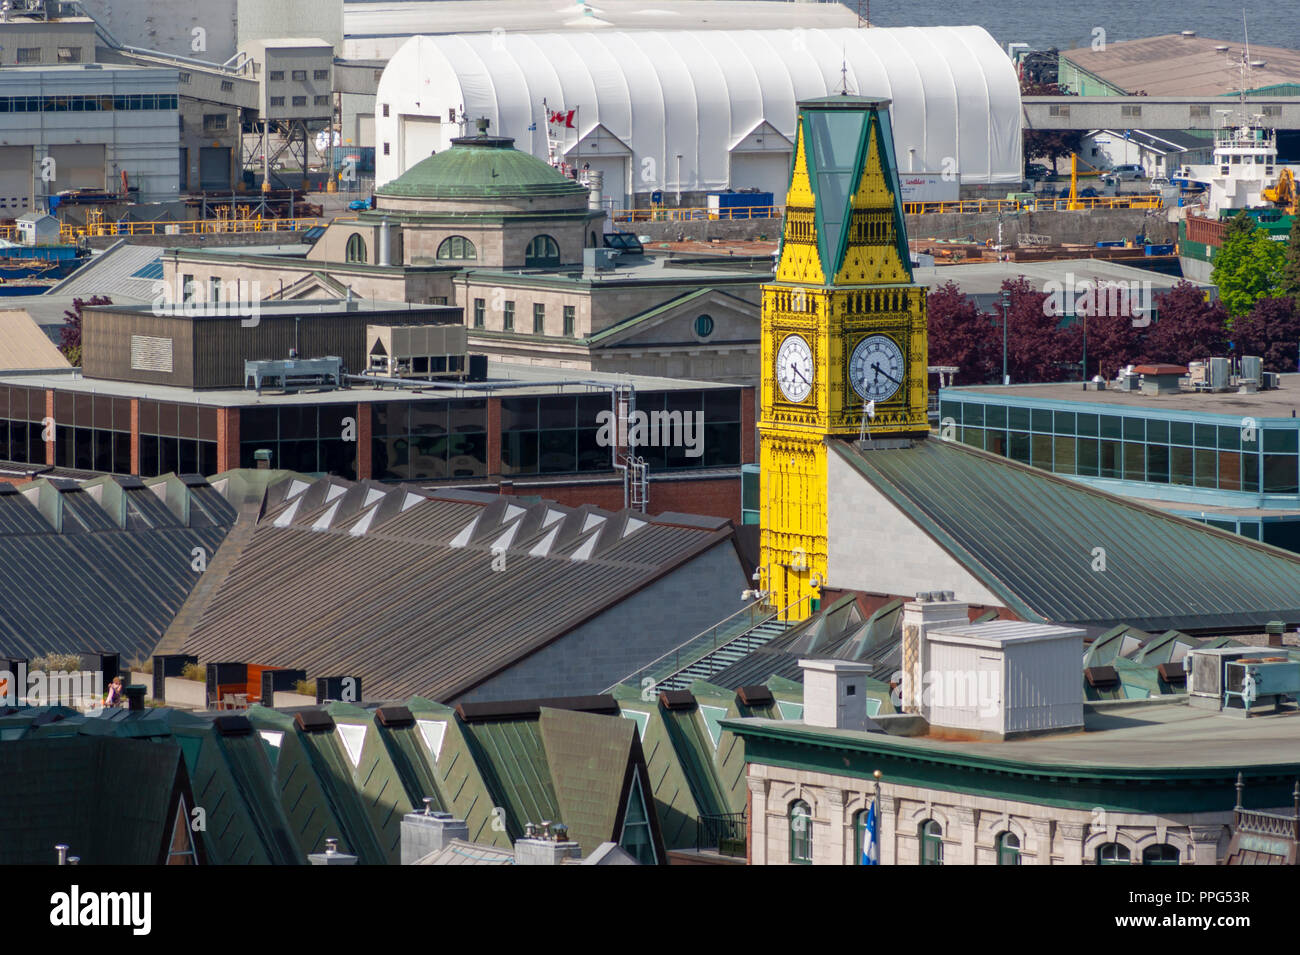 Big Ben replica installation at the Musee de la Civilisation, peeking above surrounding rooftops, in the historic district of Lower Town (Basse-Ville) - Stock Image